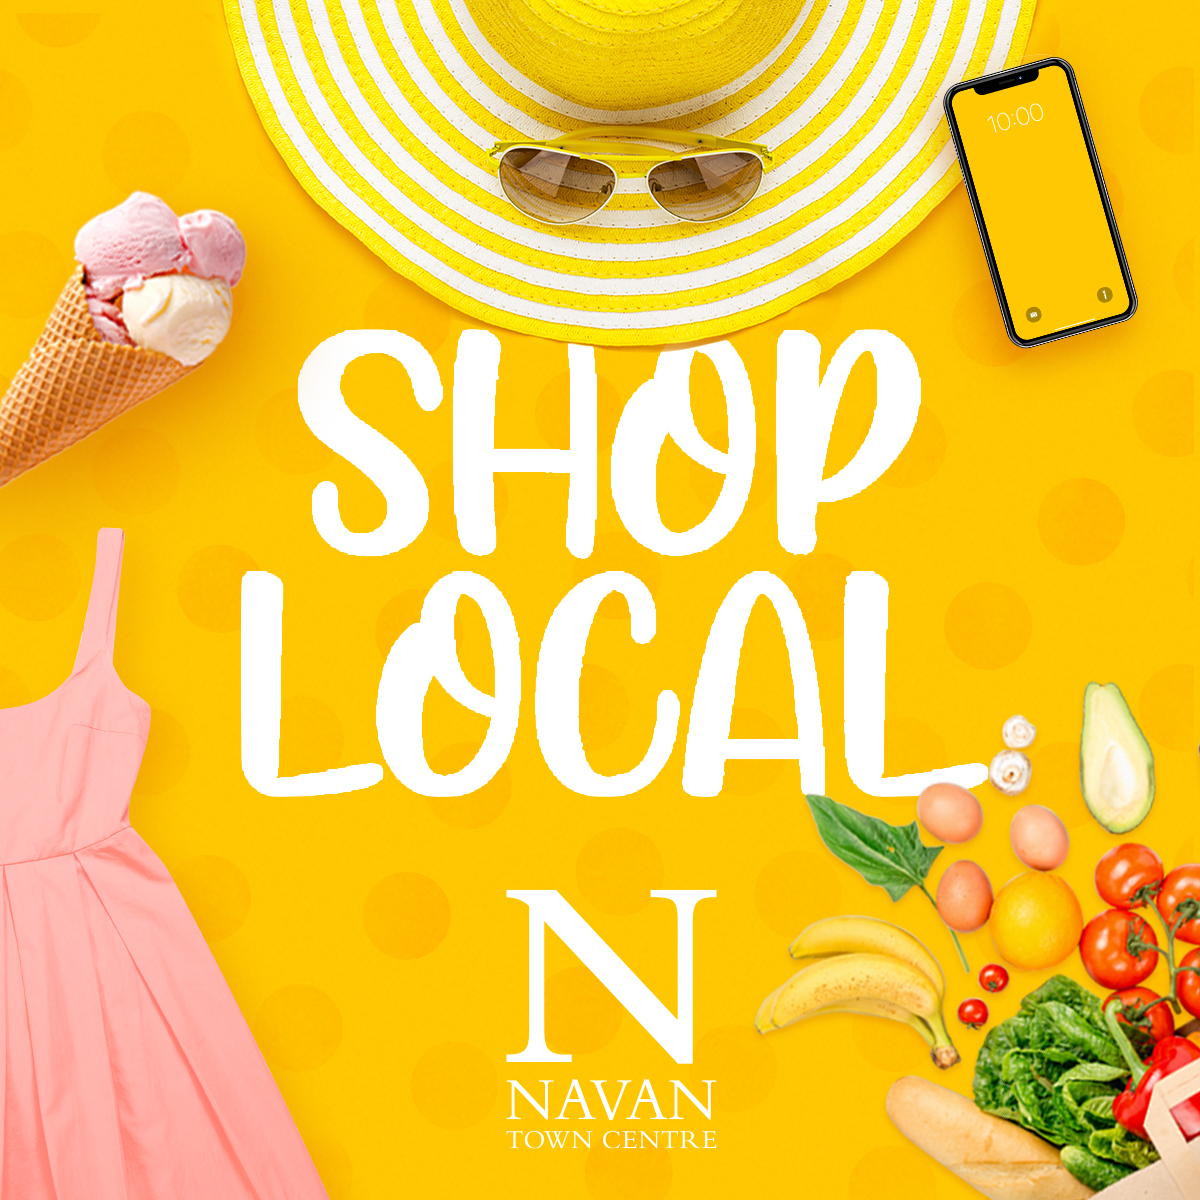 Shop Local at Navan Town Centre!